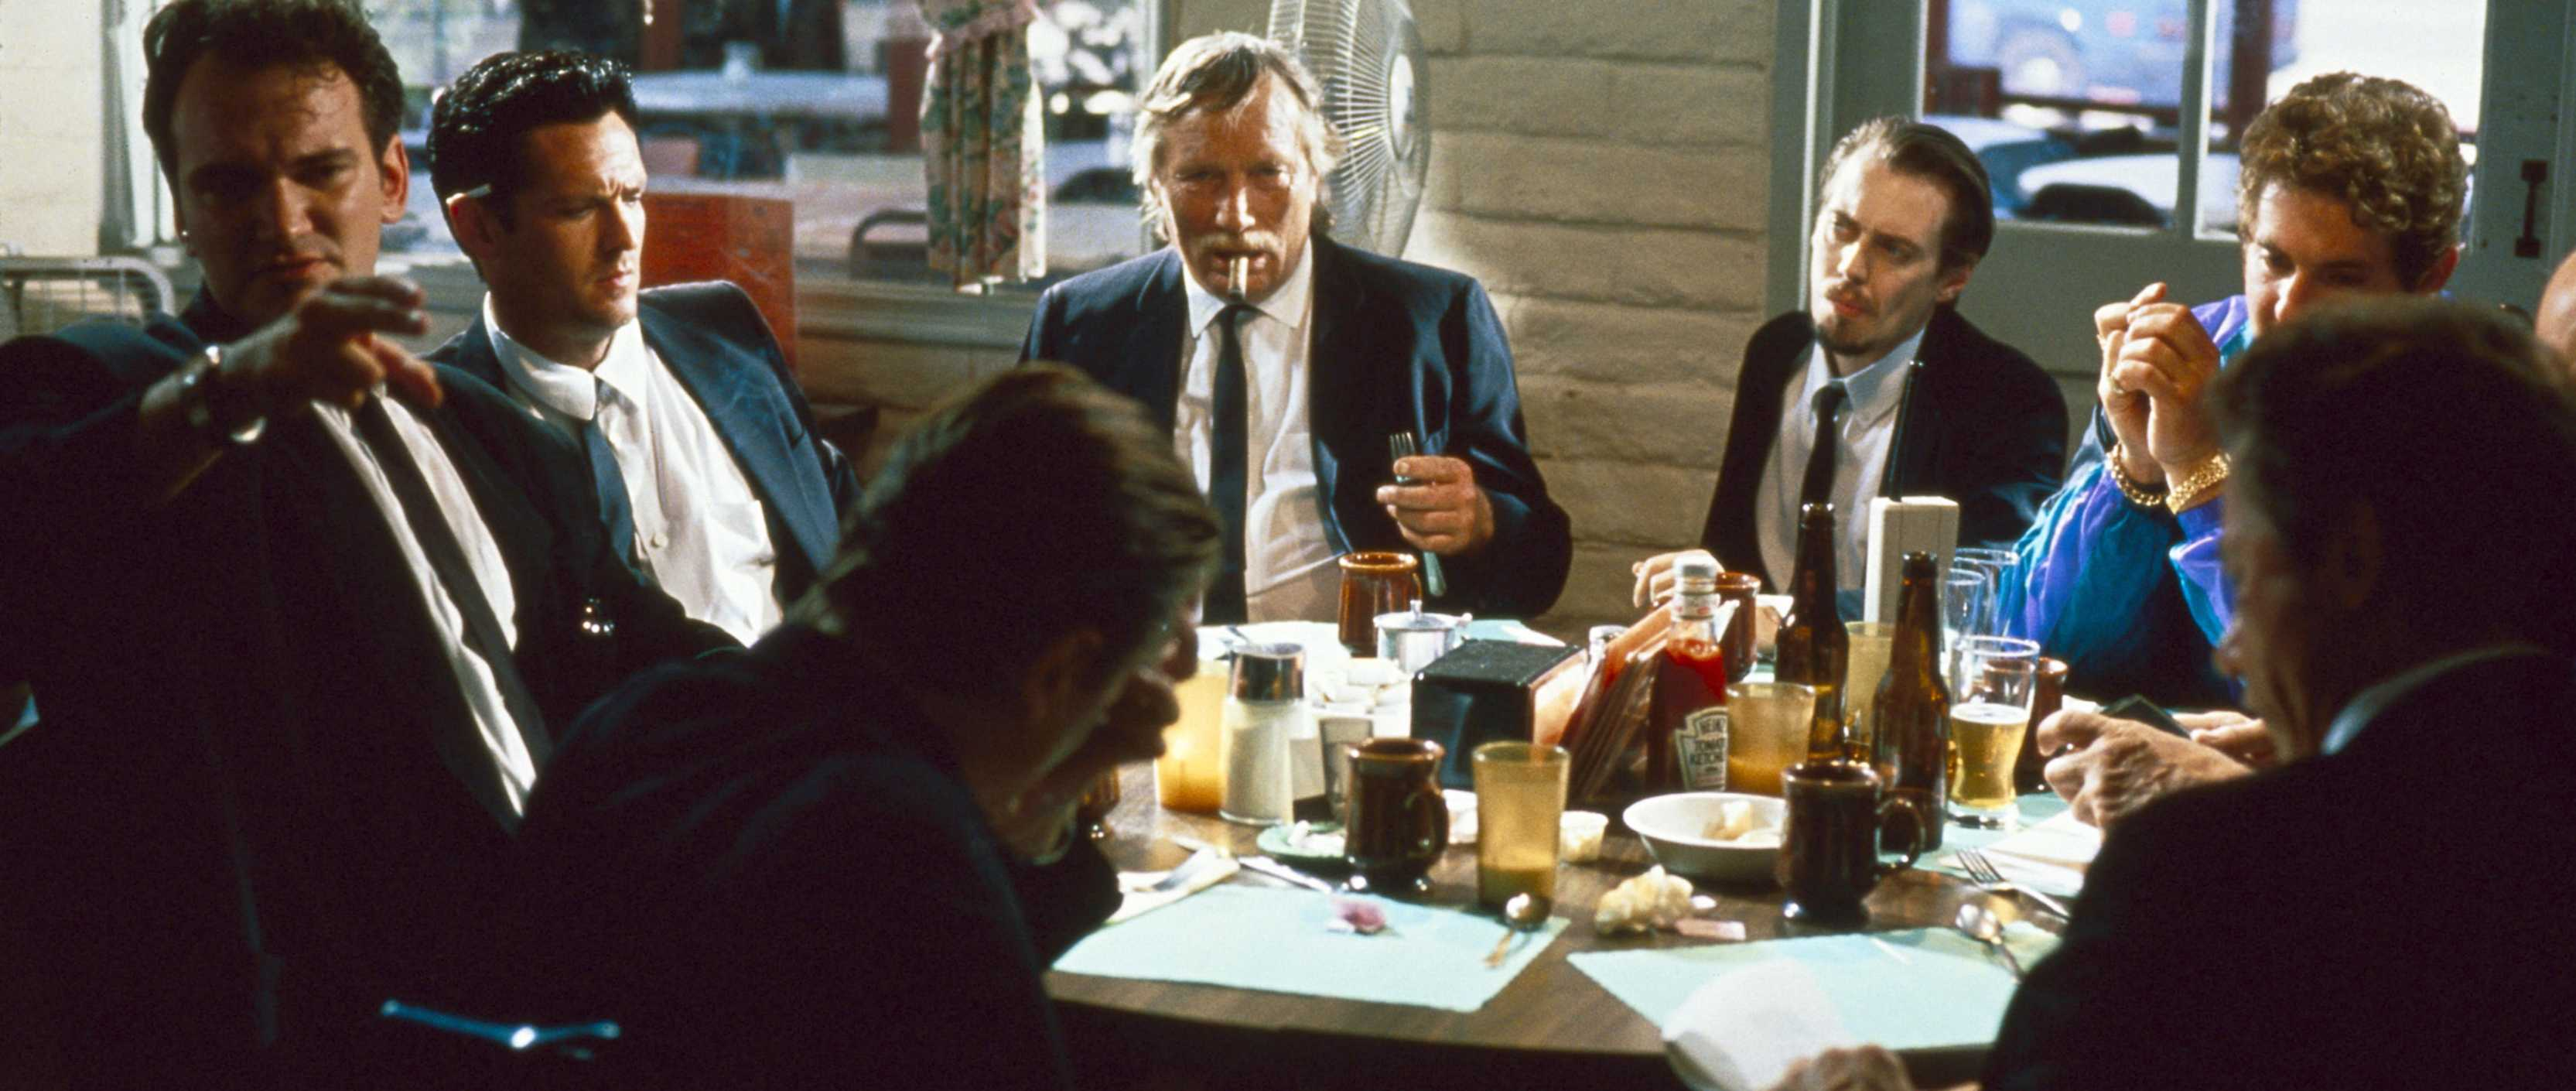 The diner scene in Reservoir Dogs